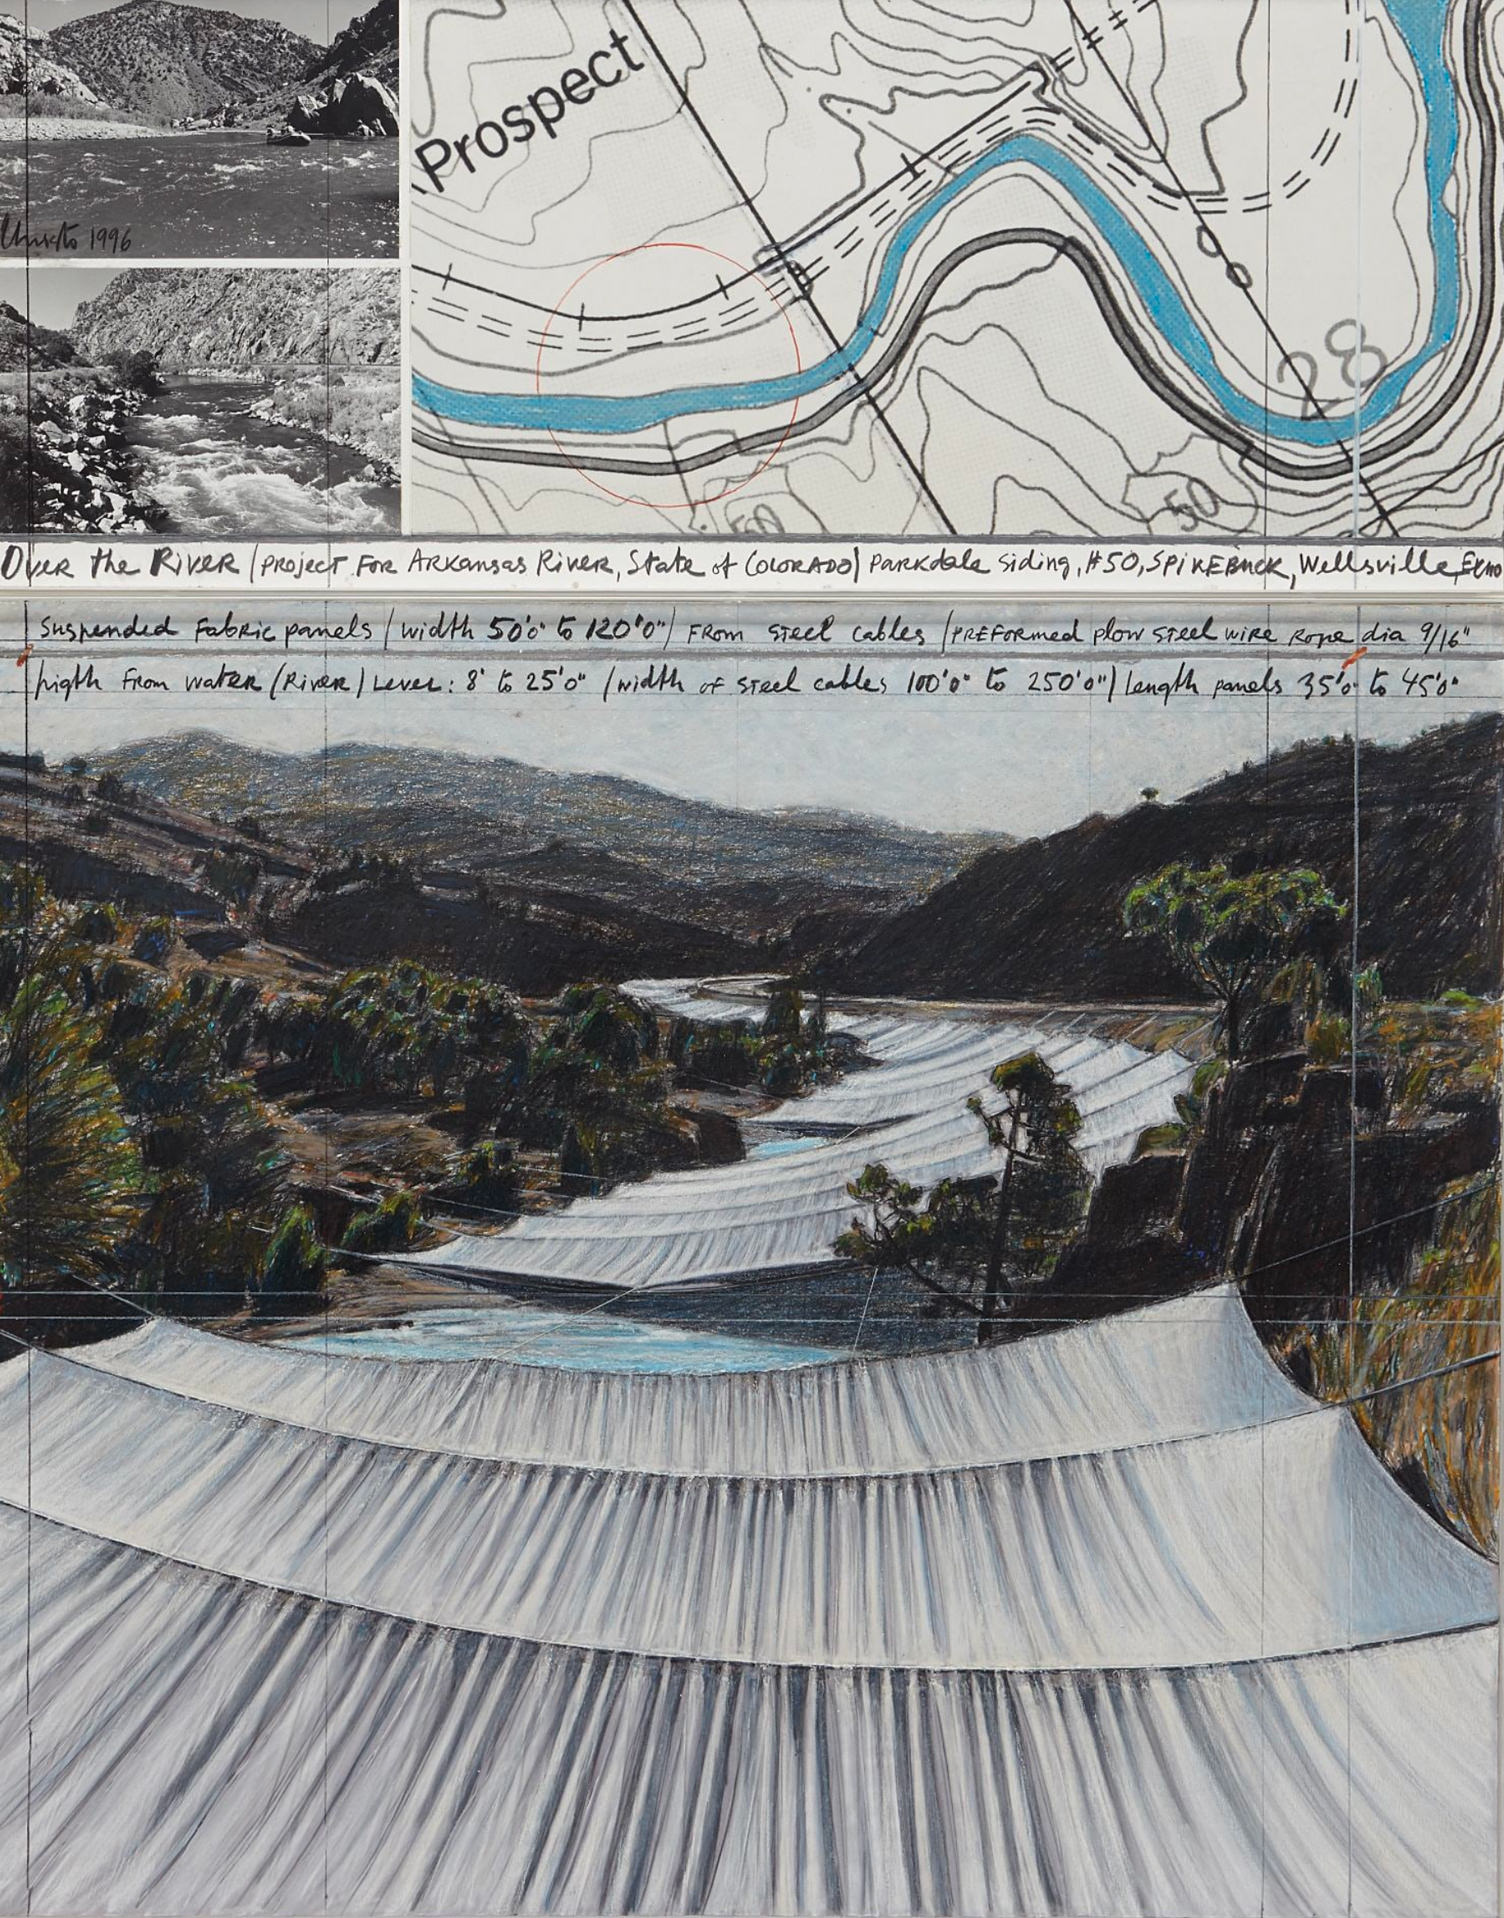 Christo. Over the River, Project for Arkansas River, State of Colorado, Parkdale Siding #42